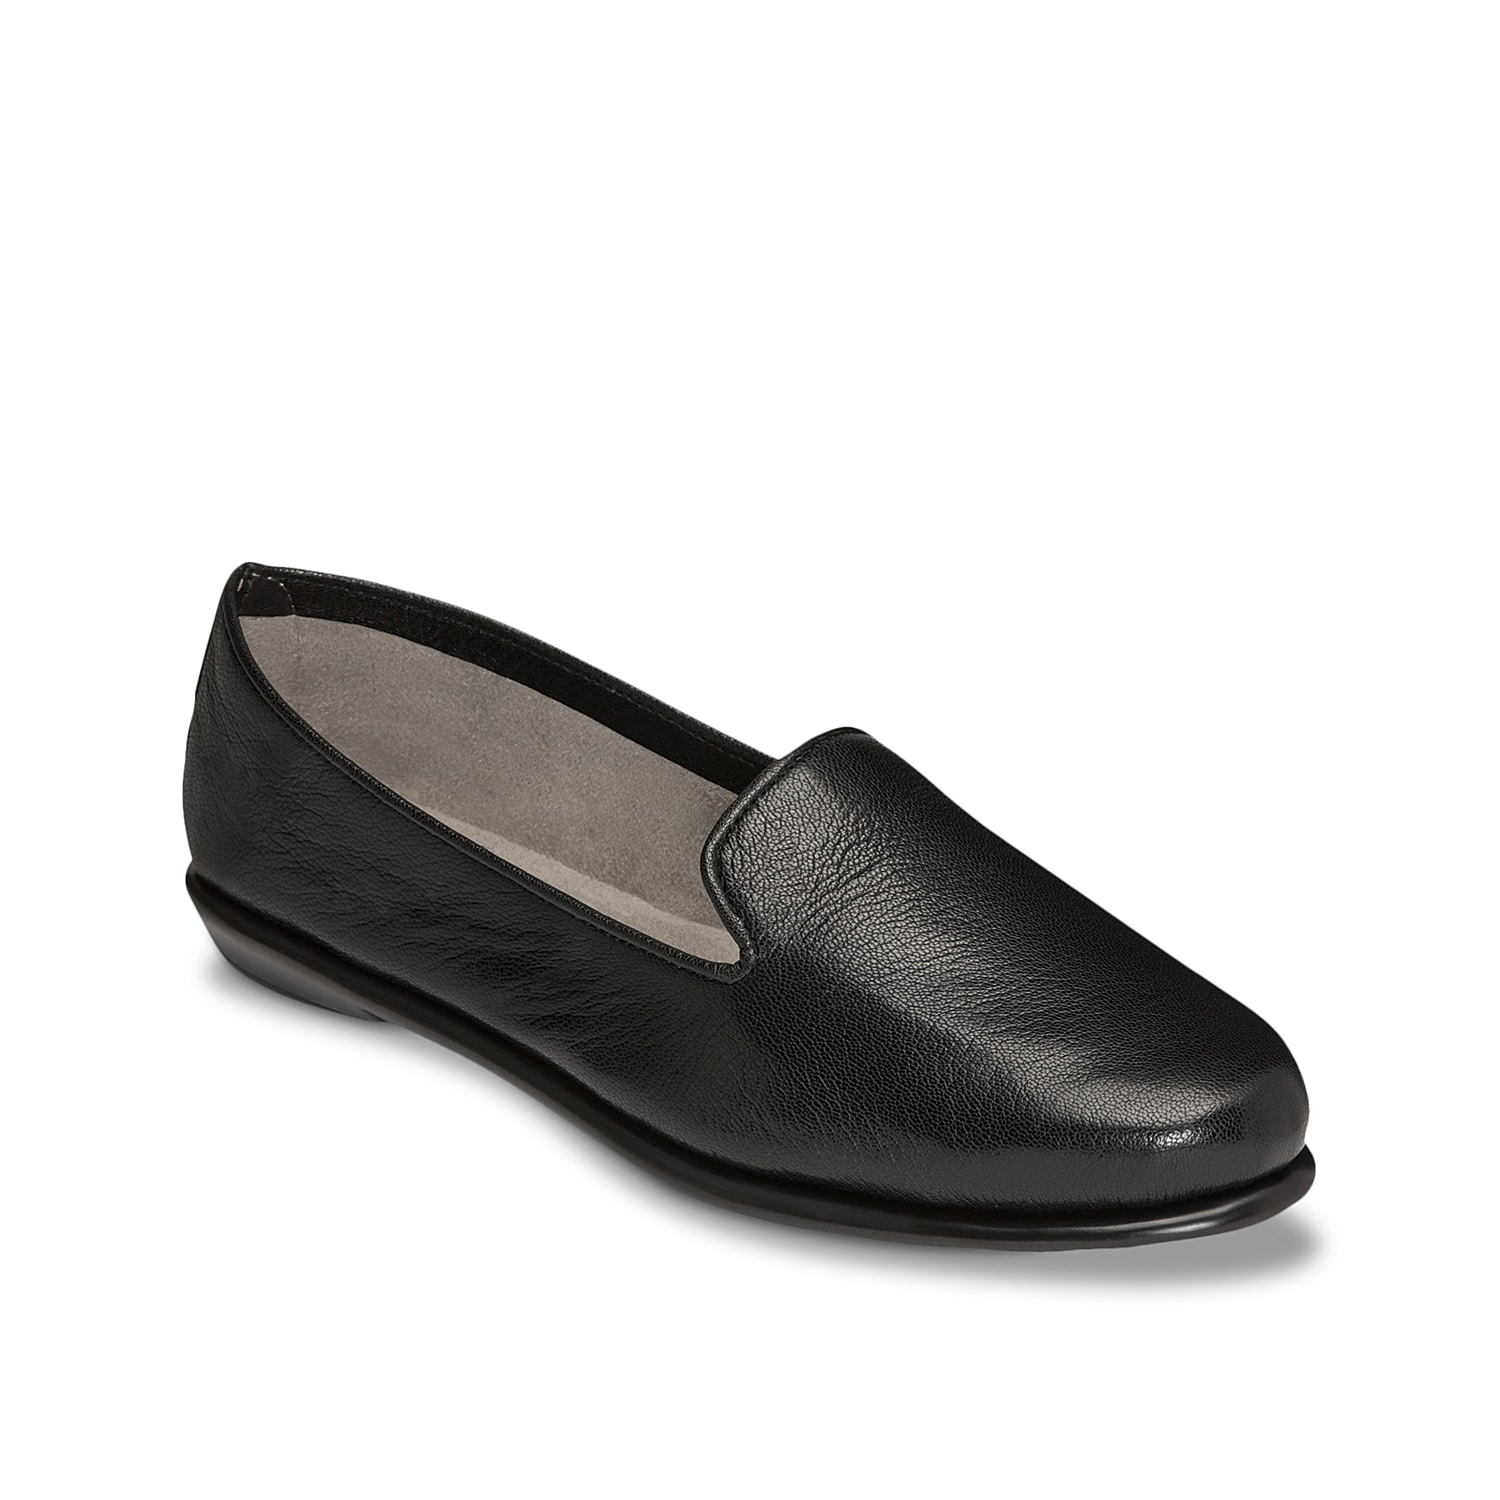 The Betunia requires no break in and is comfortable right out of the box! This Aerosoles flat has classic style, innovative technology and shoes so flexible they twist and turn with you!